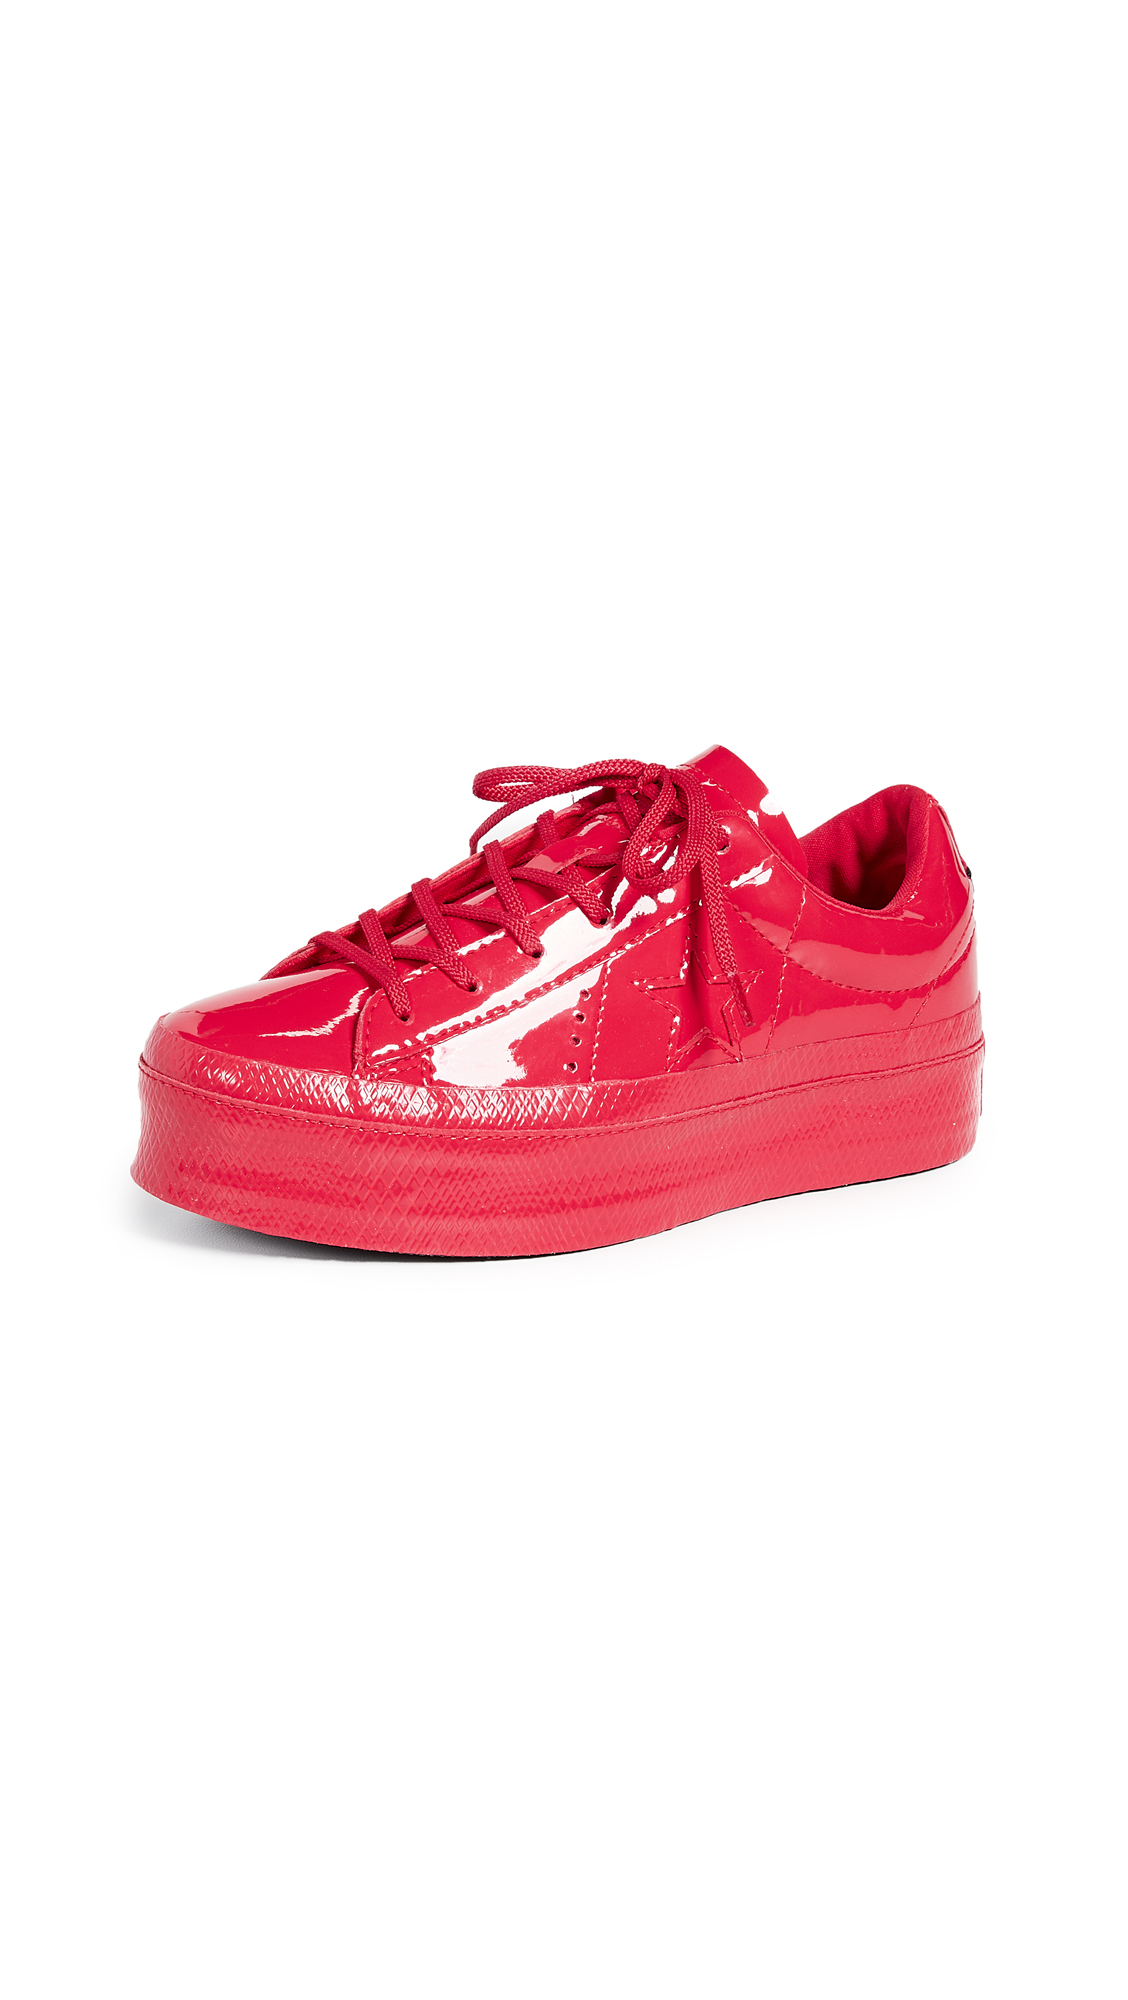 Converse One Star Platform Ox Sneakers - Cherry Red